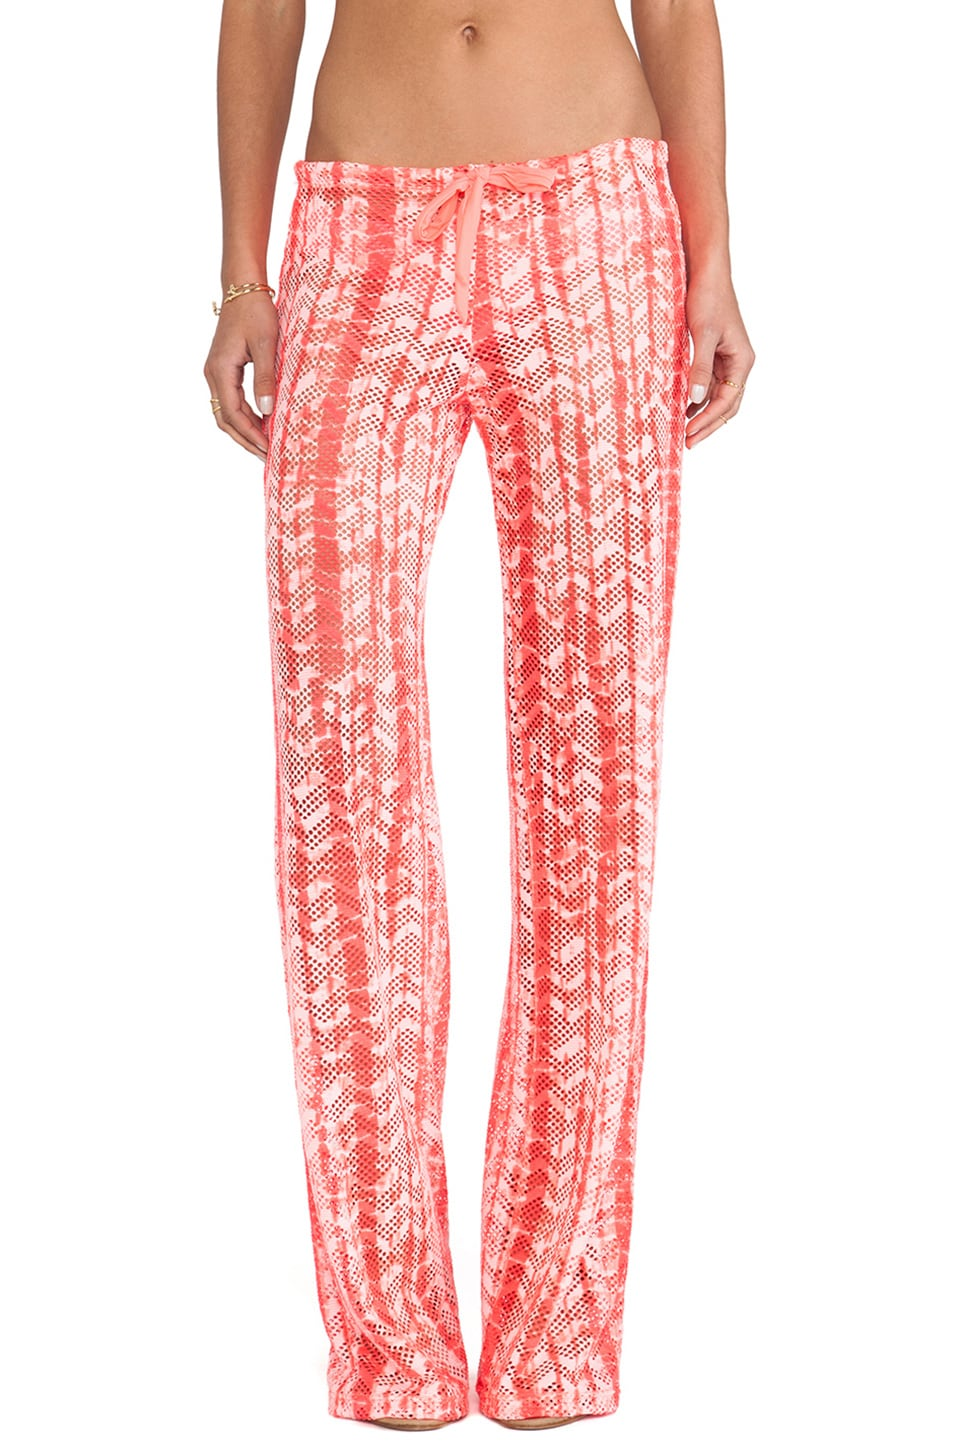 b.swim Sandy Pants in Day Tripper Glow